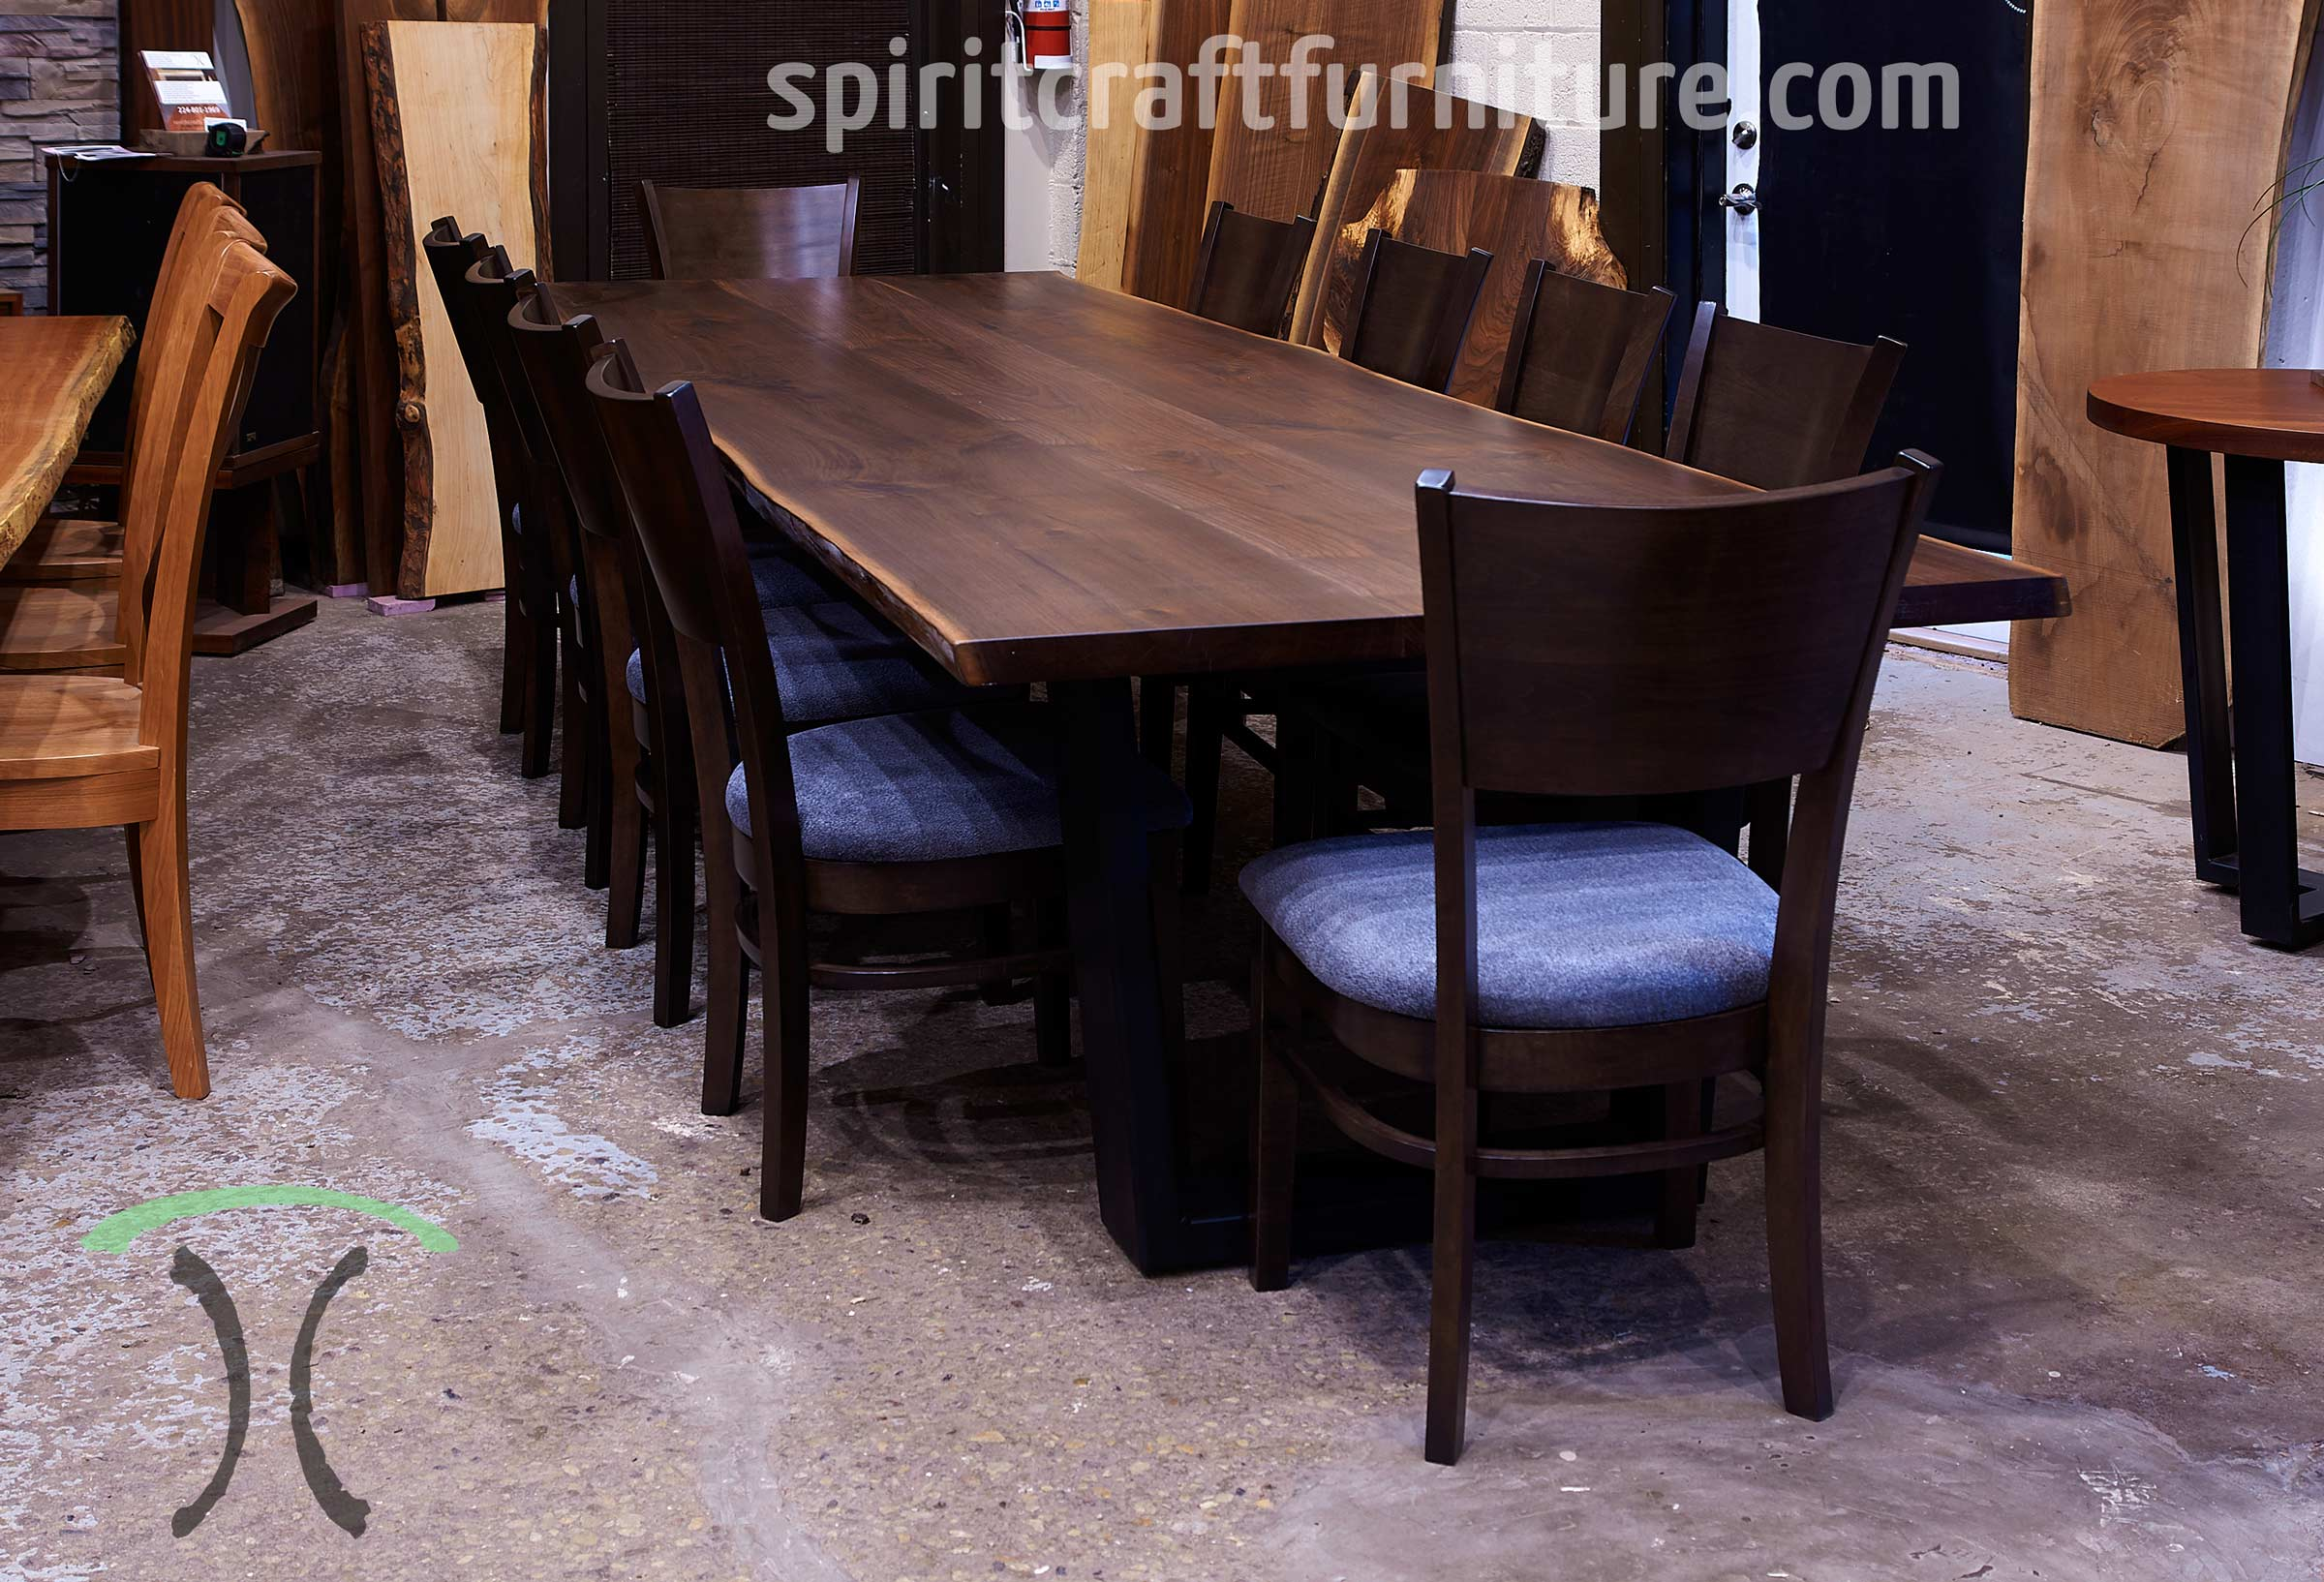 Exterior Balcony Ceiling Designs, Custom Solid Wood Table Tops Live Edge Slab Tables